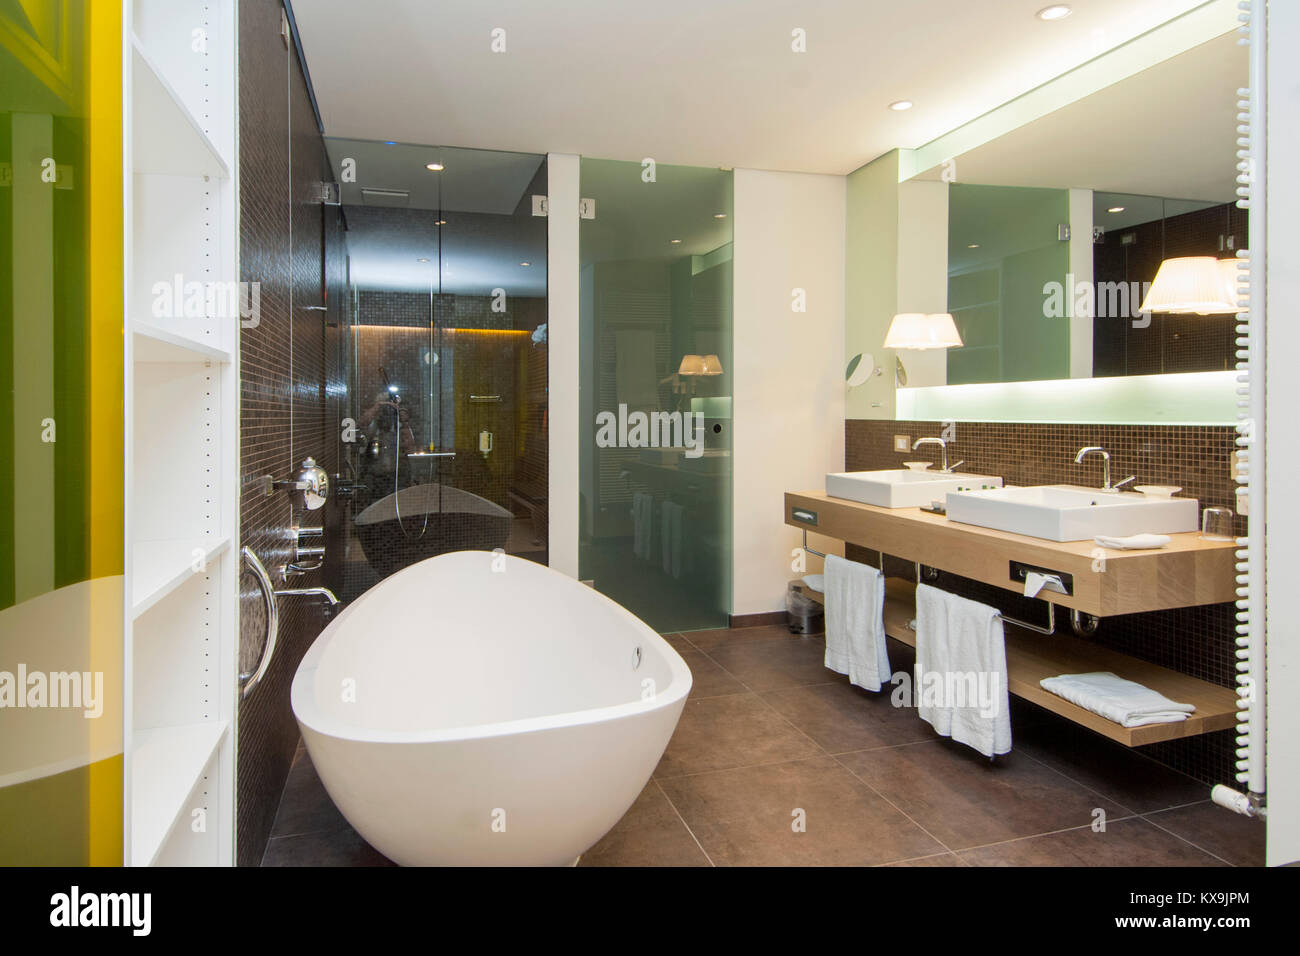 Matteo stock photos matteo stock images alamy for Hotel meran design